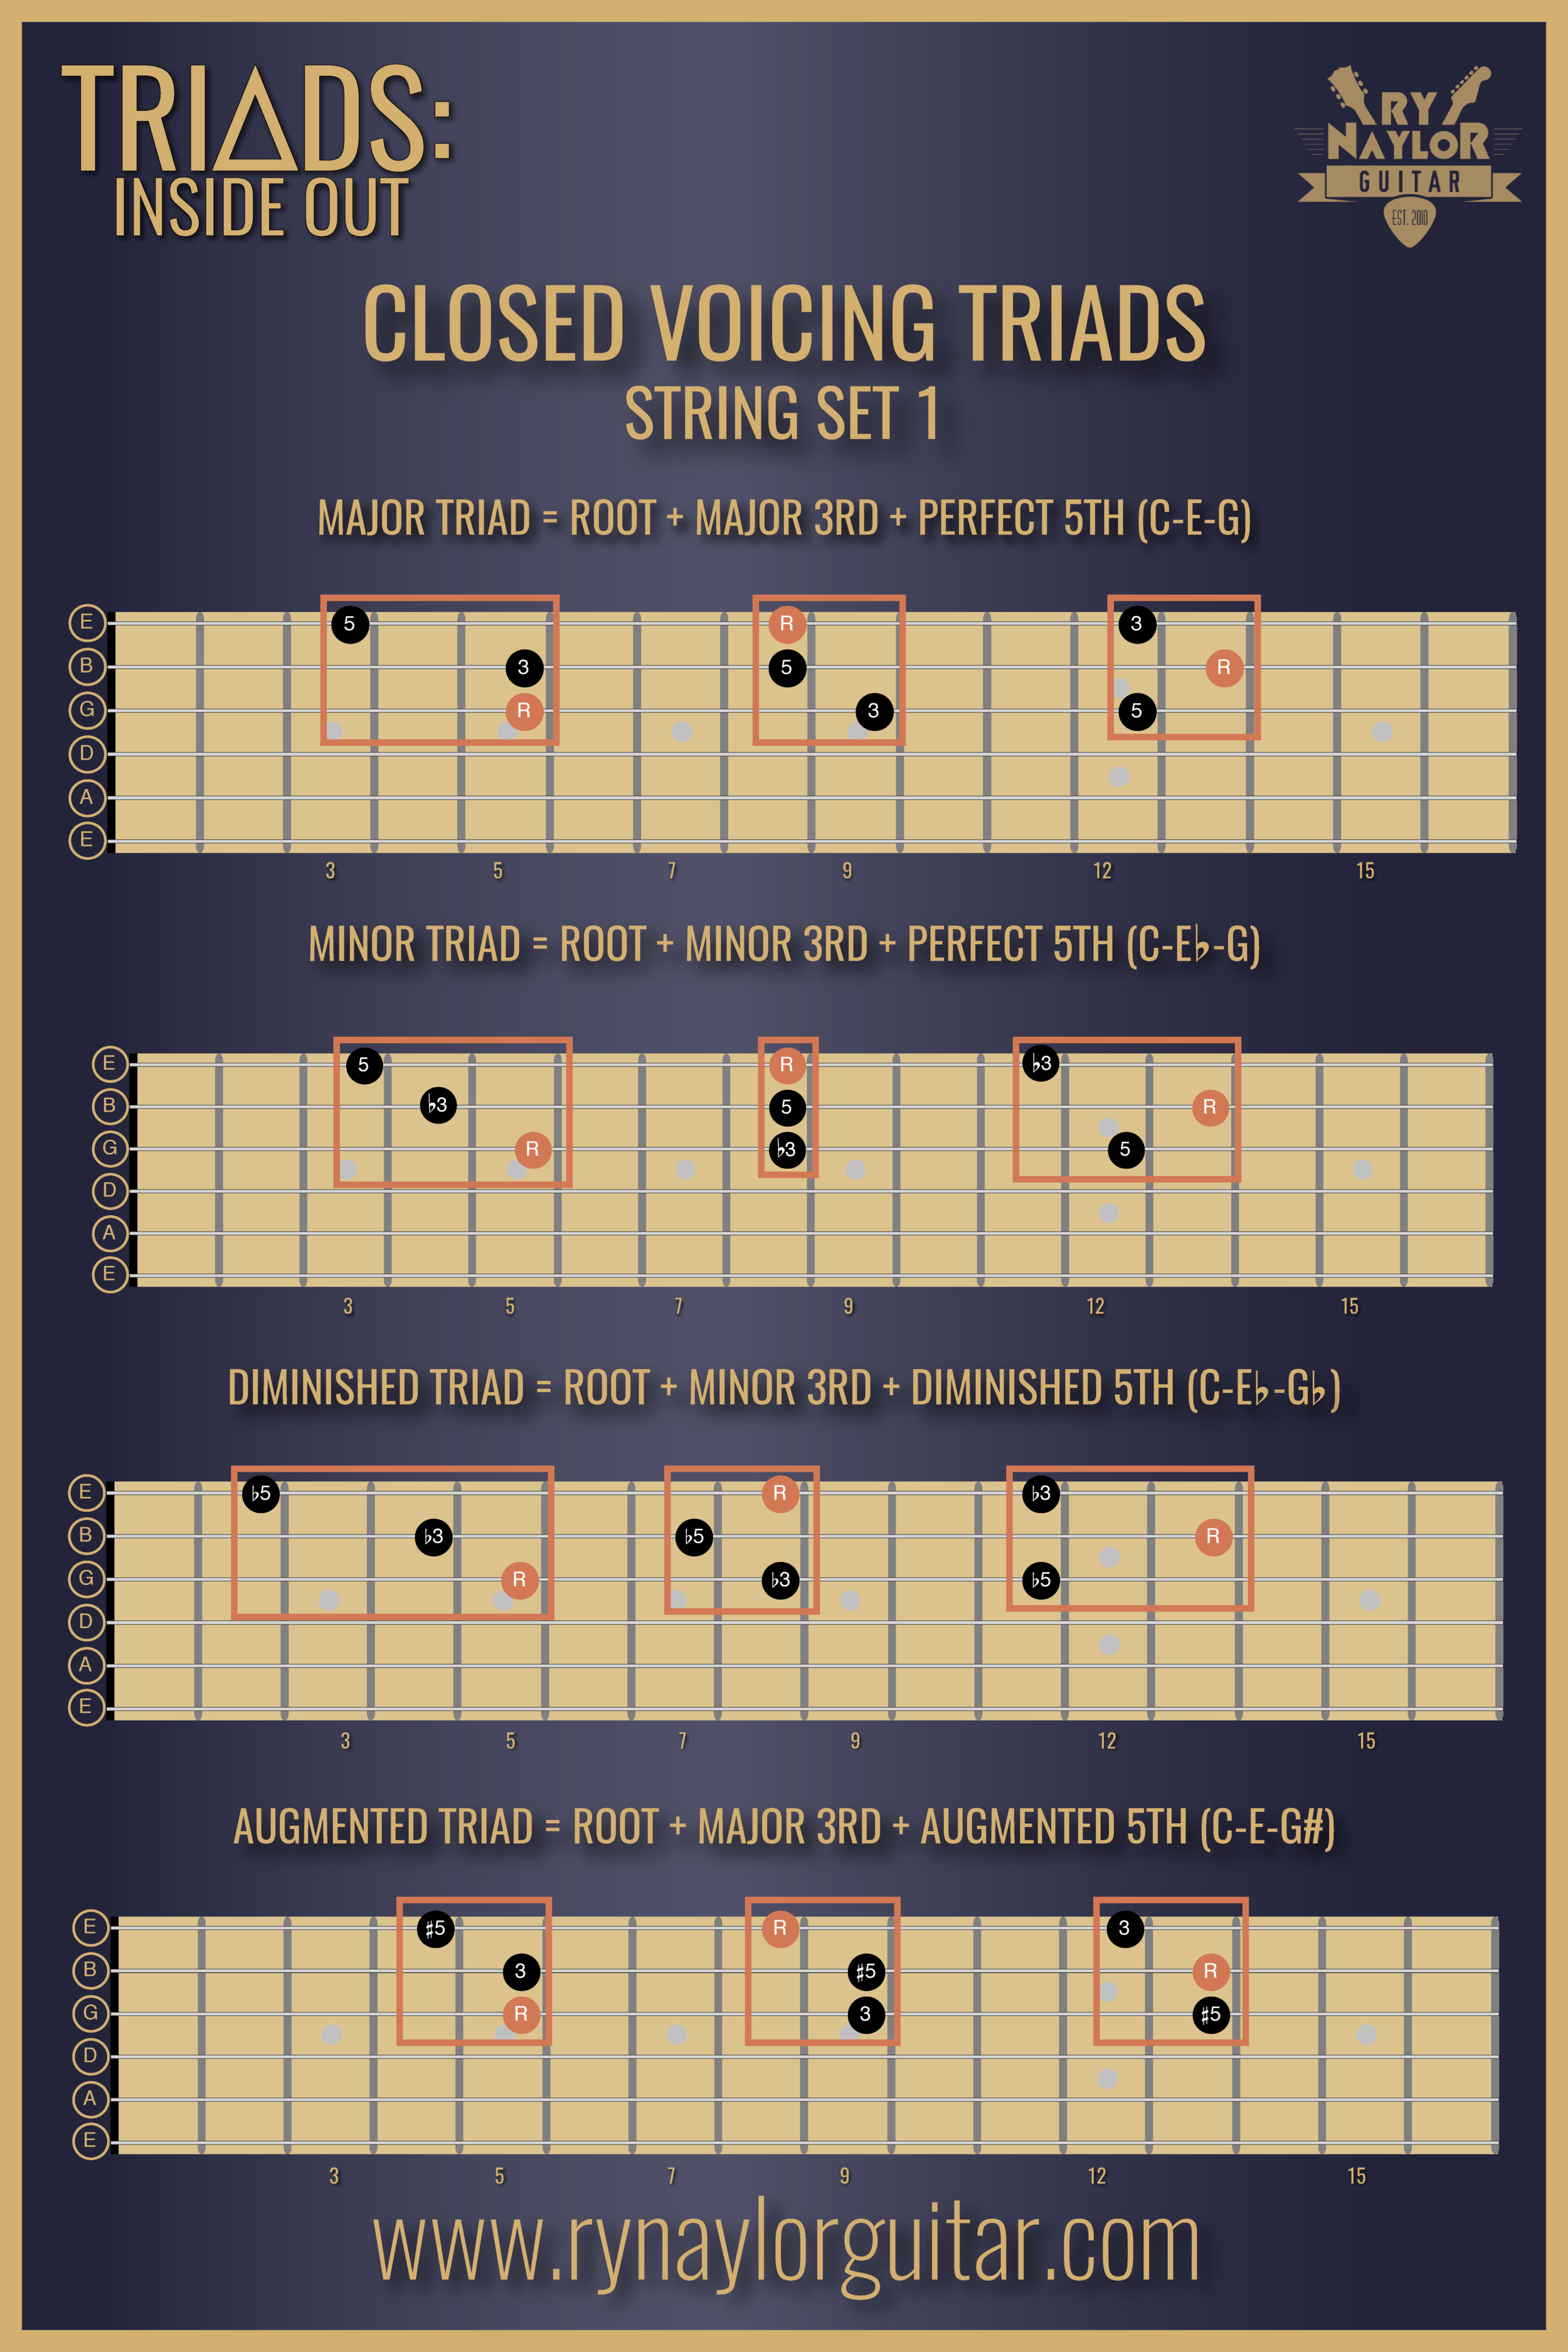 Closed Voicing Triads String Set 1.png